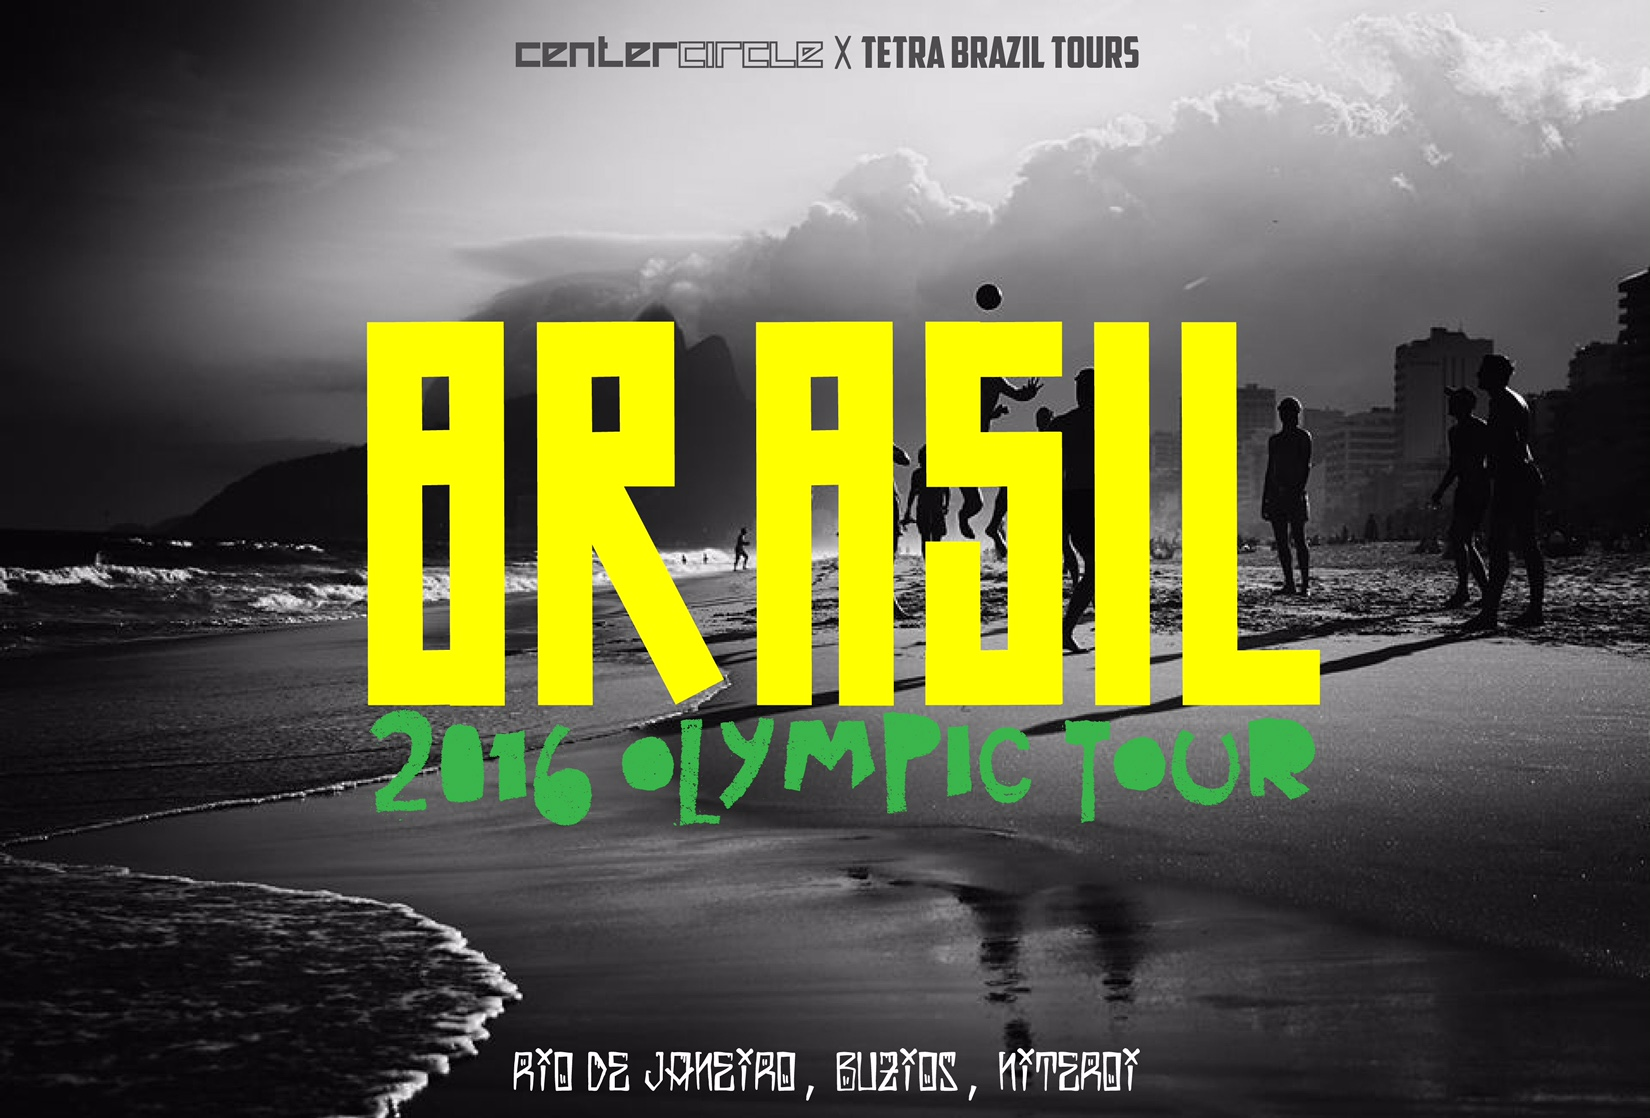 Center Circle x Tetra Brazil Tour 2016